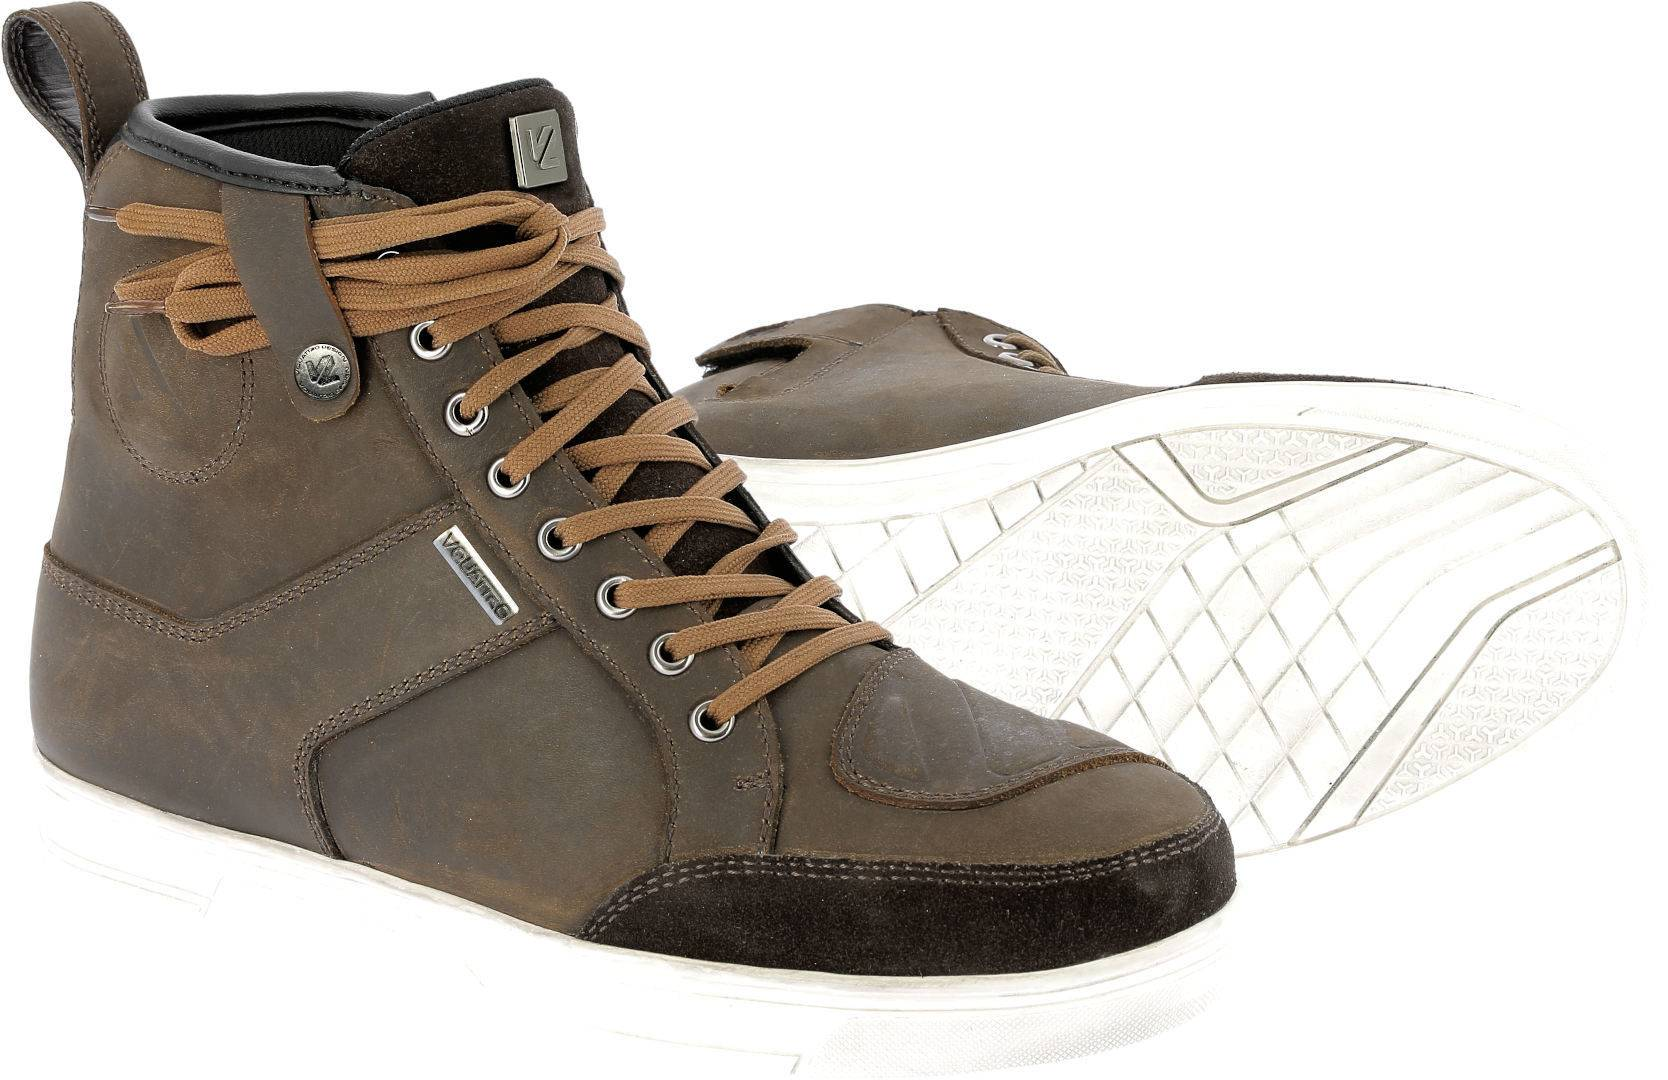 VQuattro X Urban Motorcycle Shoes  - Size: 44